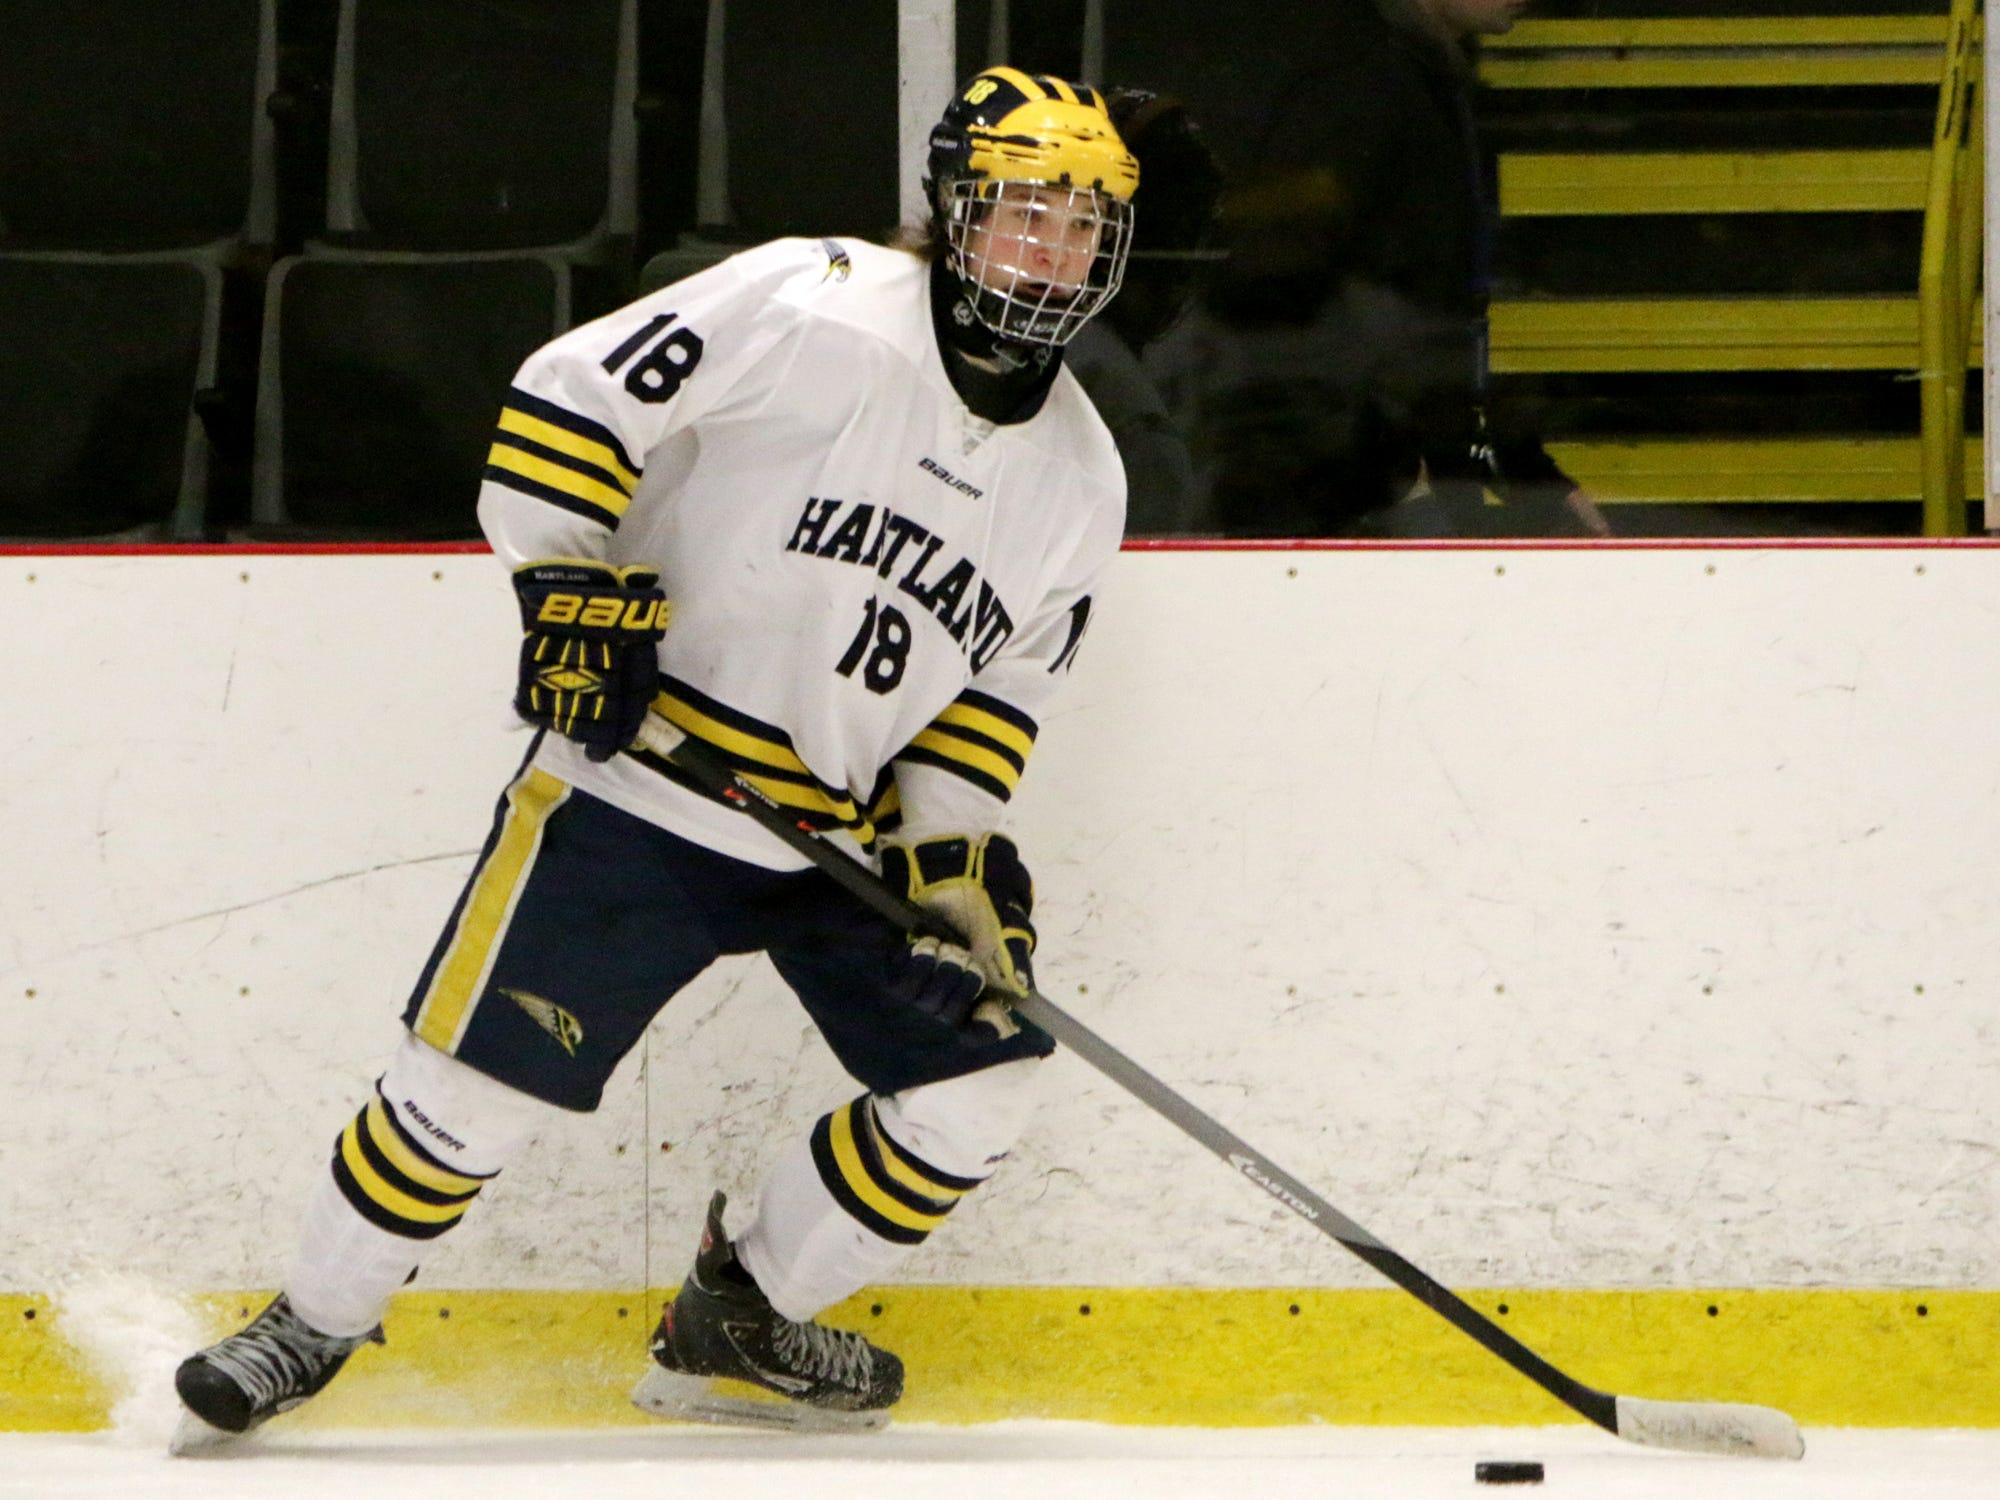 Nathan Lipon had a big weekend, getting a hat trick against Trenton on Friday and two more against Hancock on Saturday.